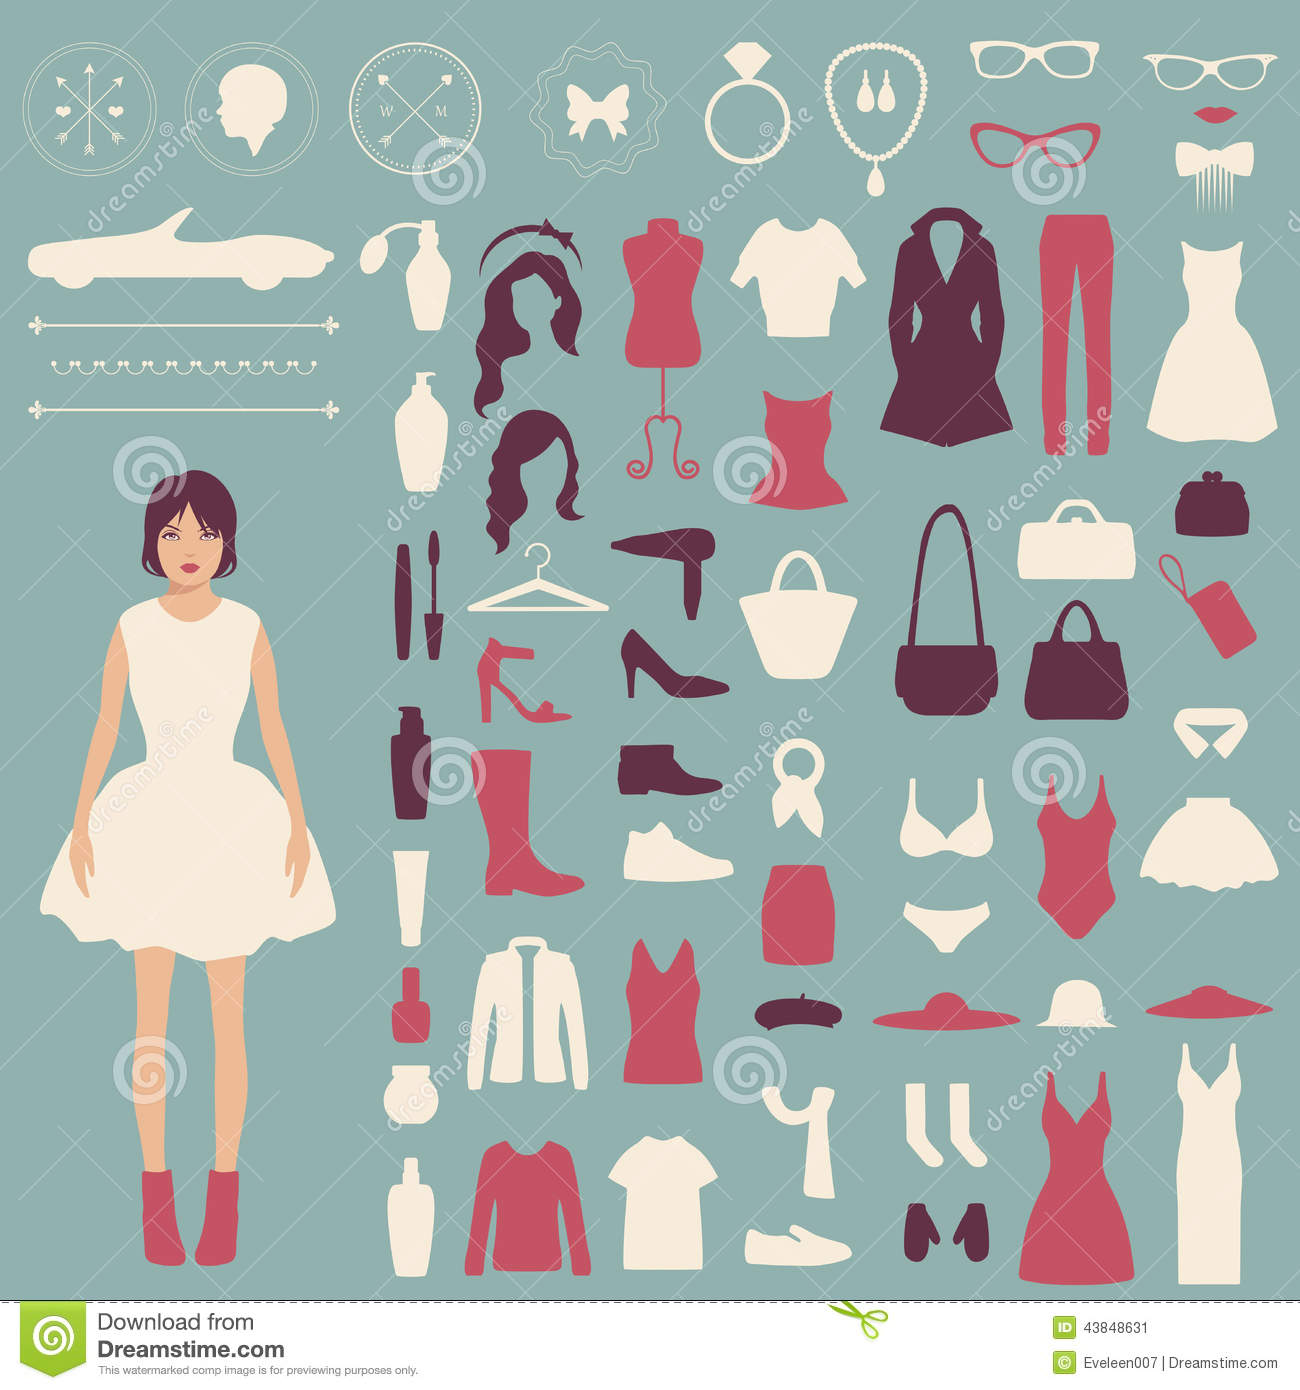 Fashion Vector Icons Stock Vector Illustration Of Black 43848631